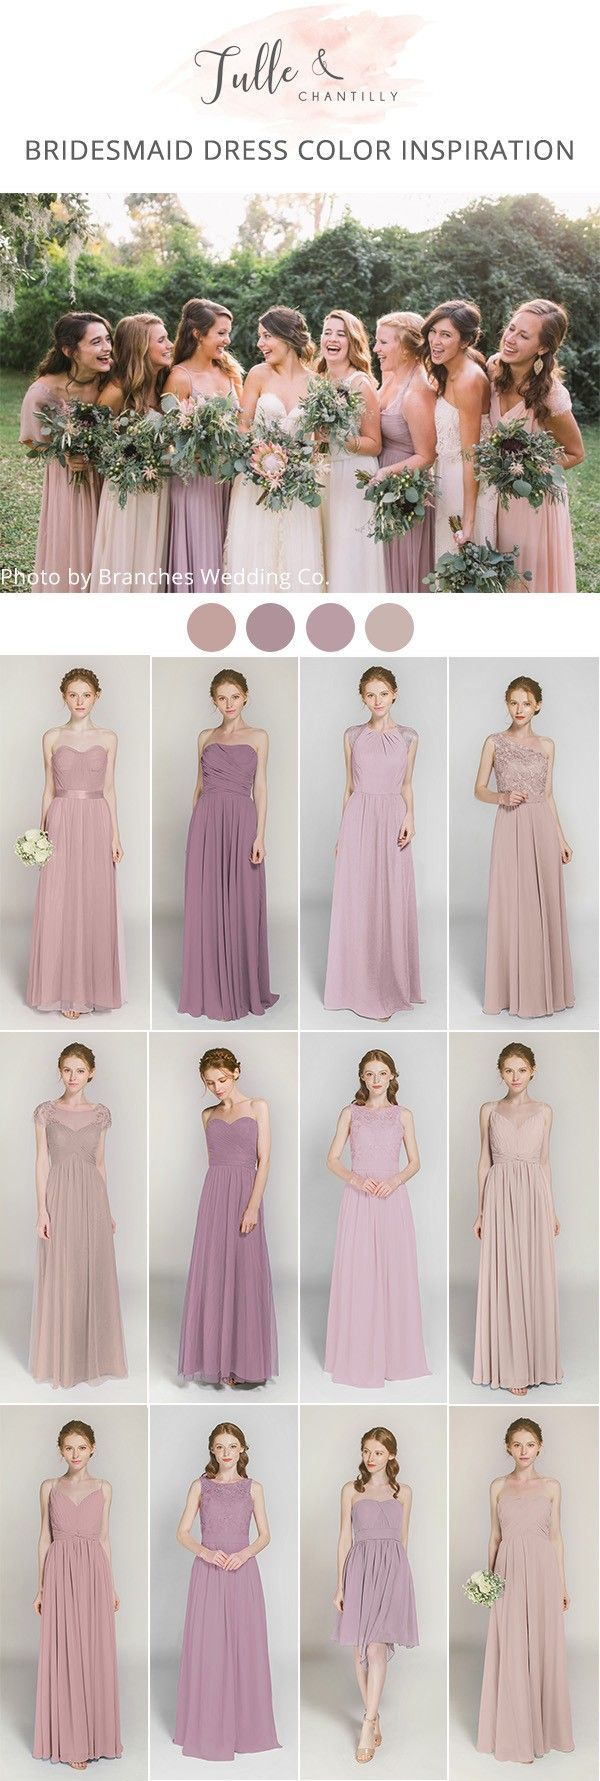 Shades Of Dusty Pink And Lavender Mismatched Bridesmaid Dresses Purple Bridesmaid Dresses Bridesmaid Dress Colors Bridesmaid Dress Shades [ 1781 x 600 Pixel ]